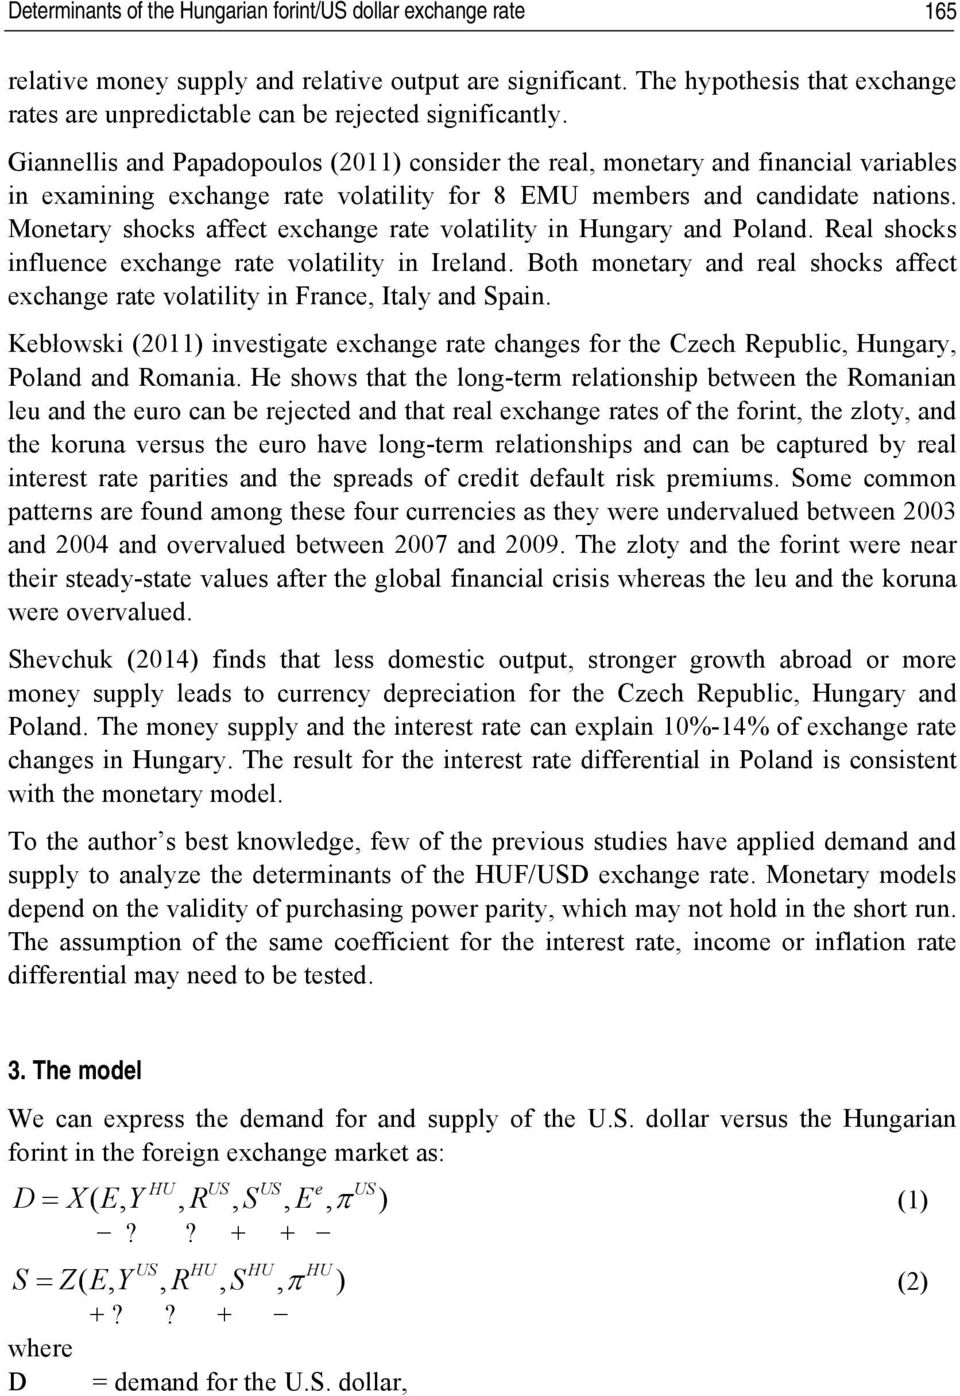 Giannellis And Papadopoulos 2017 Consider The Real Monetary Financial Variables In Examining